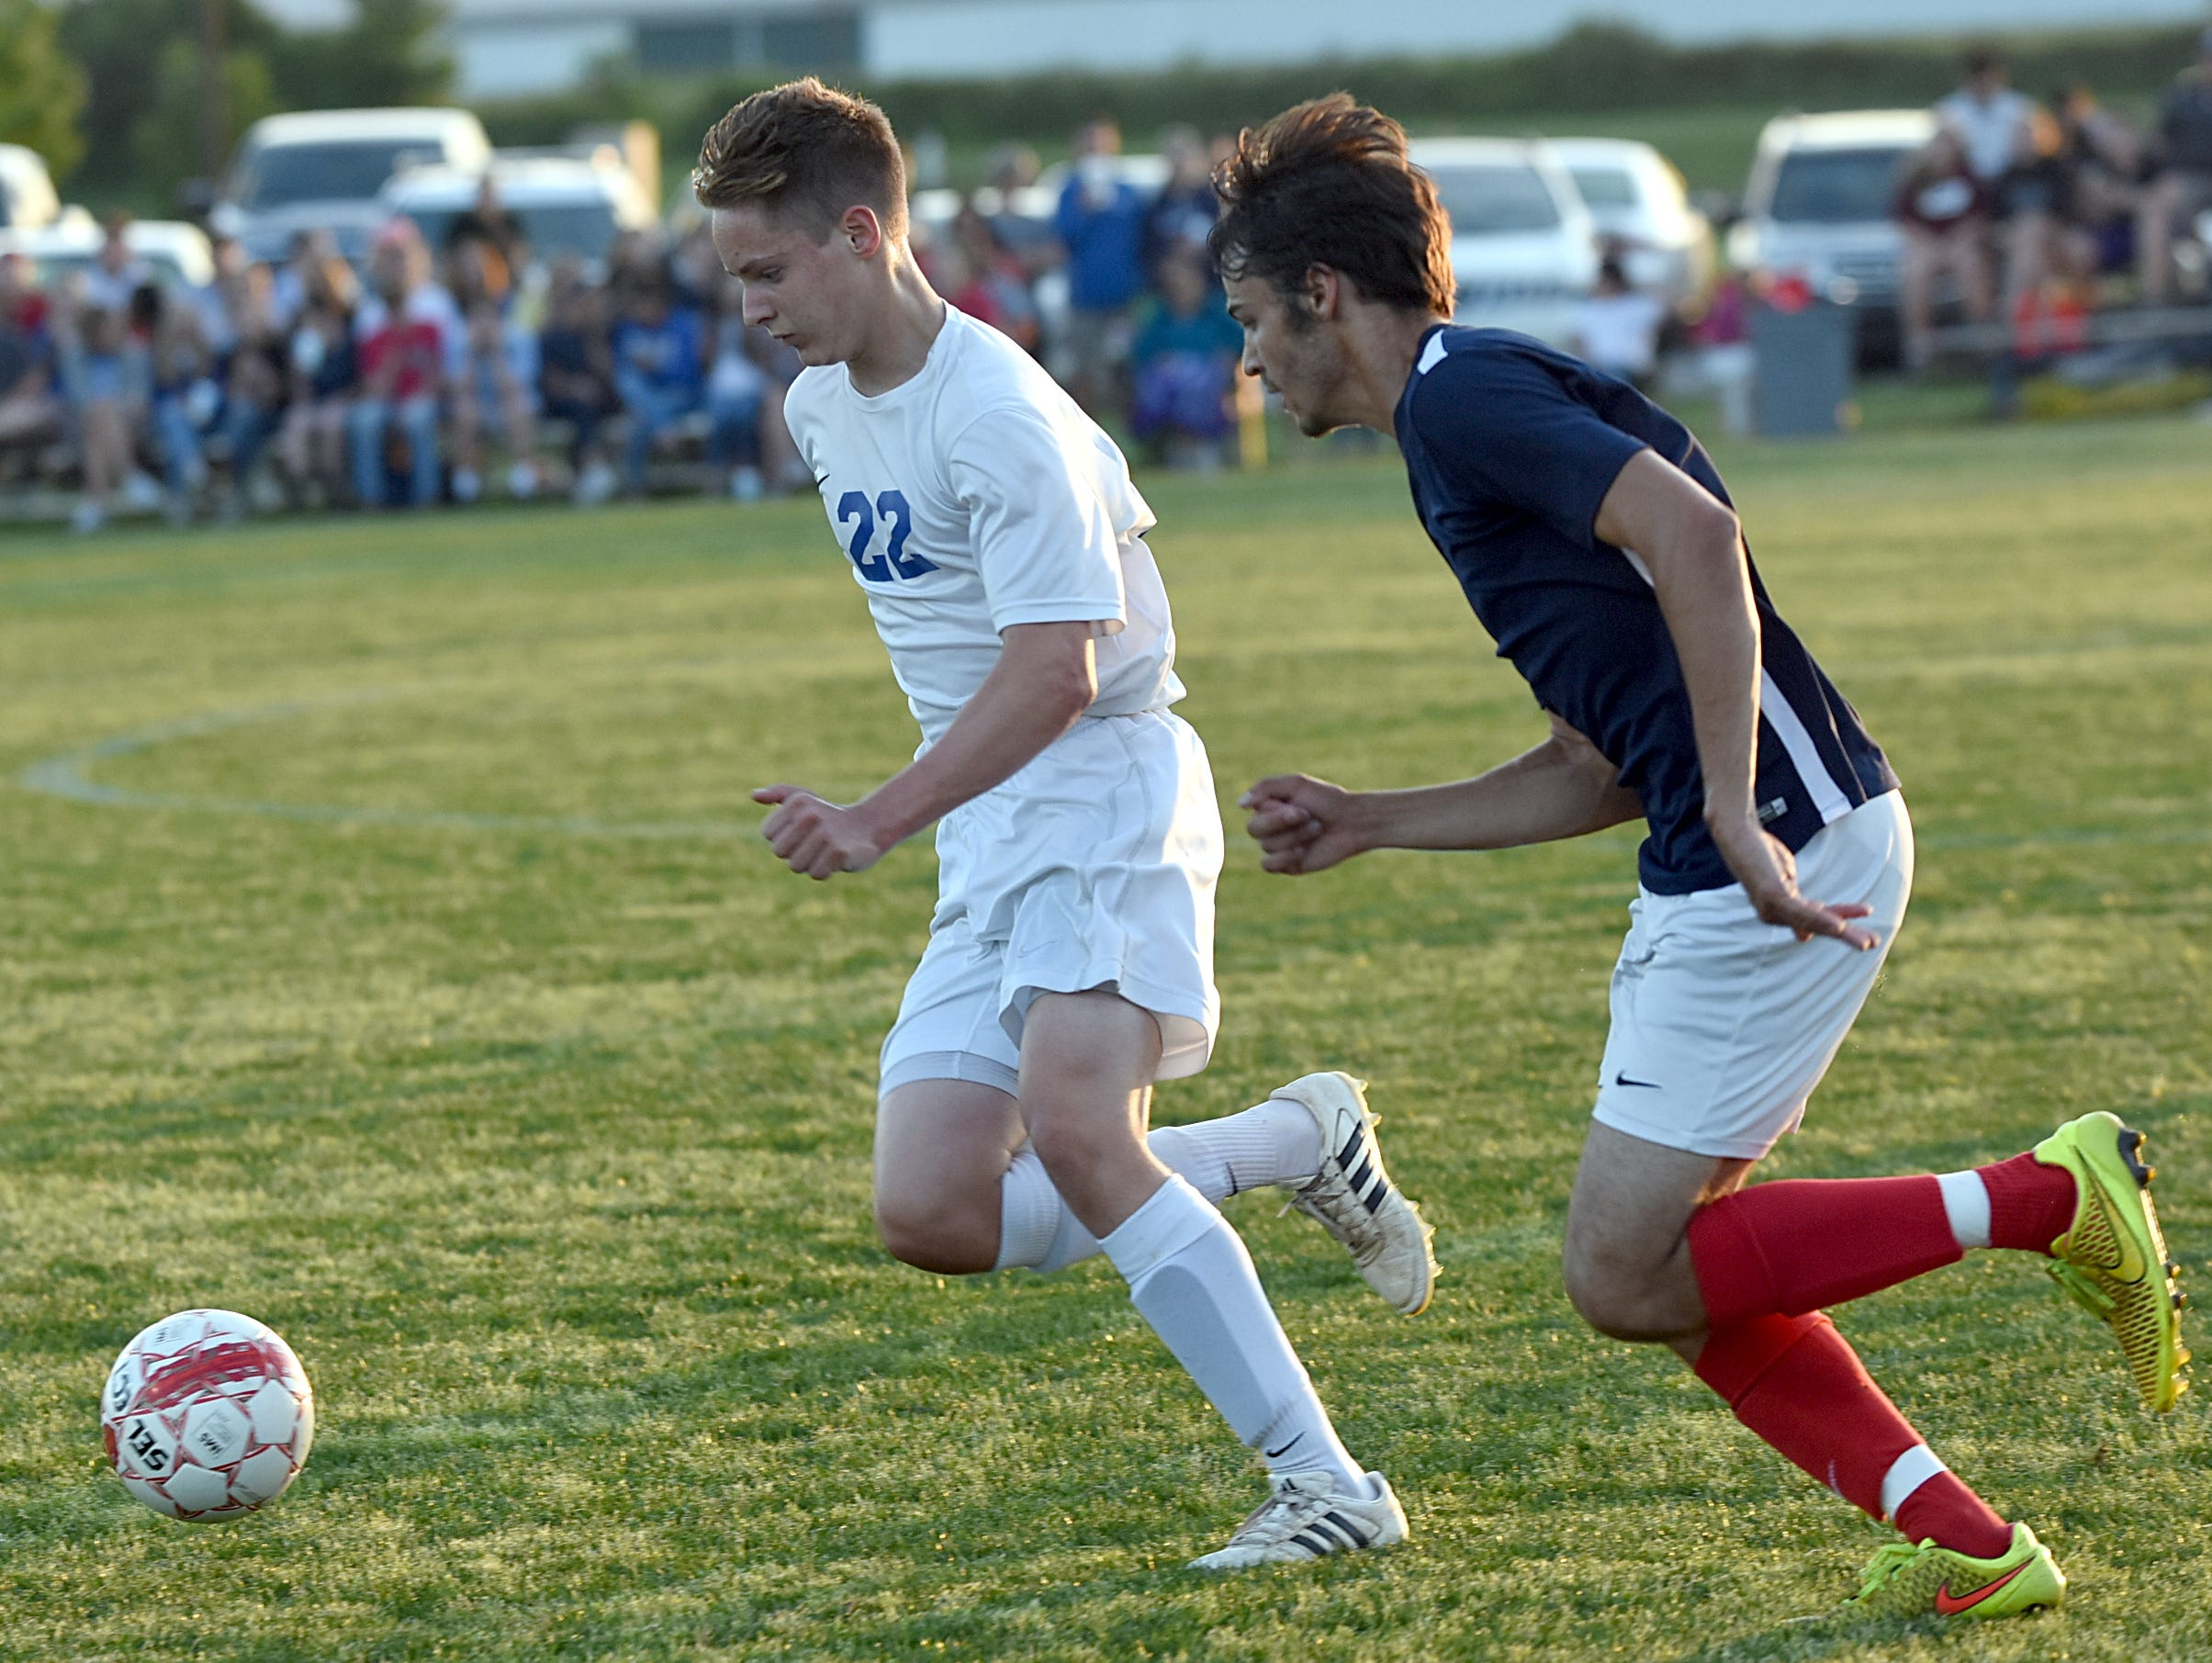 White House High sophomore defender Seth Bumbalough dribbles upfield as White House Heritage senior Trent Burian pursues during first-half action.